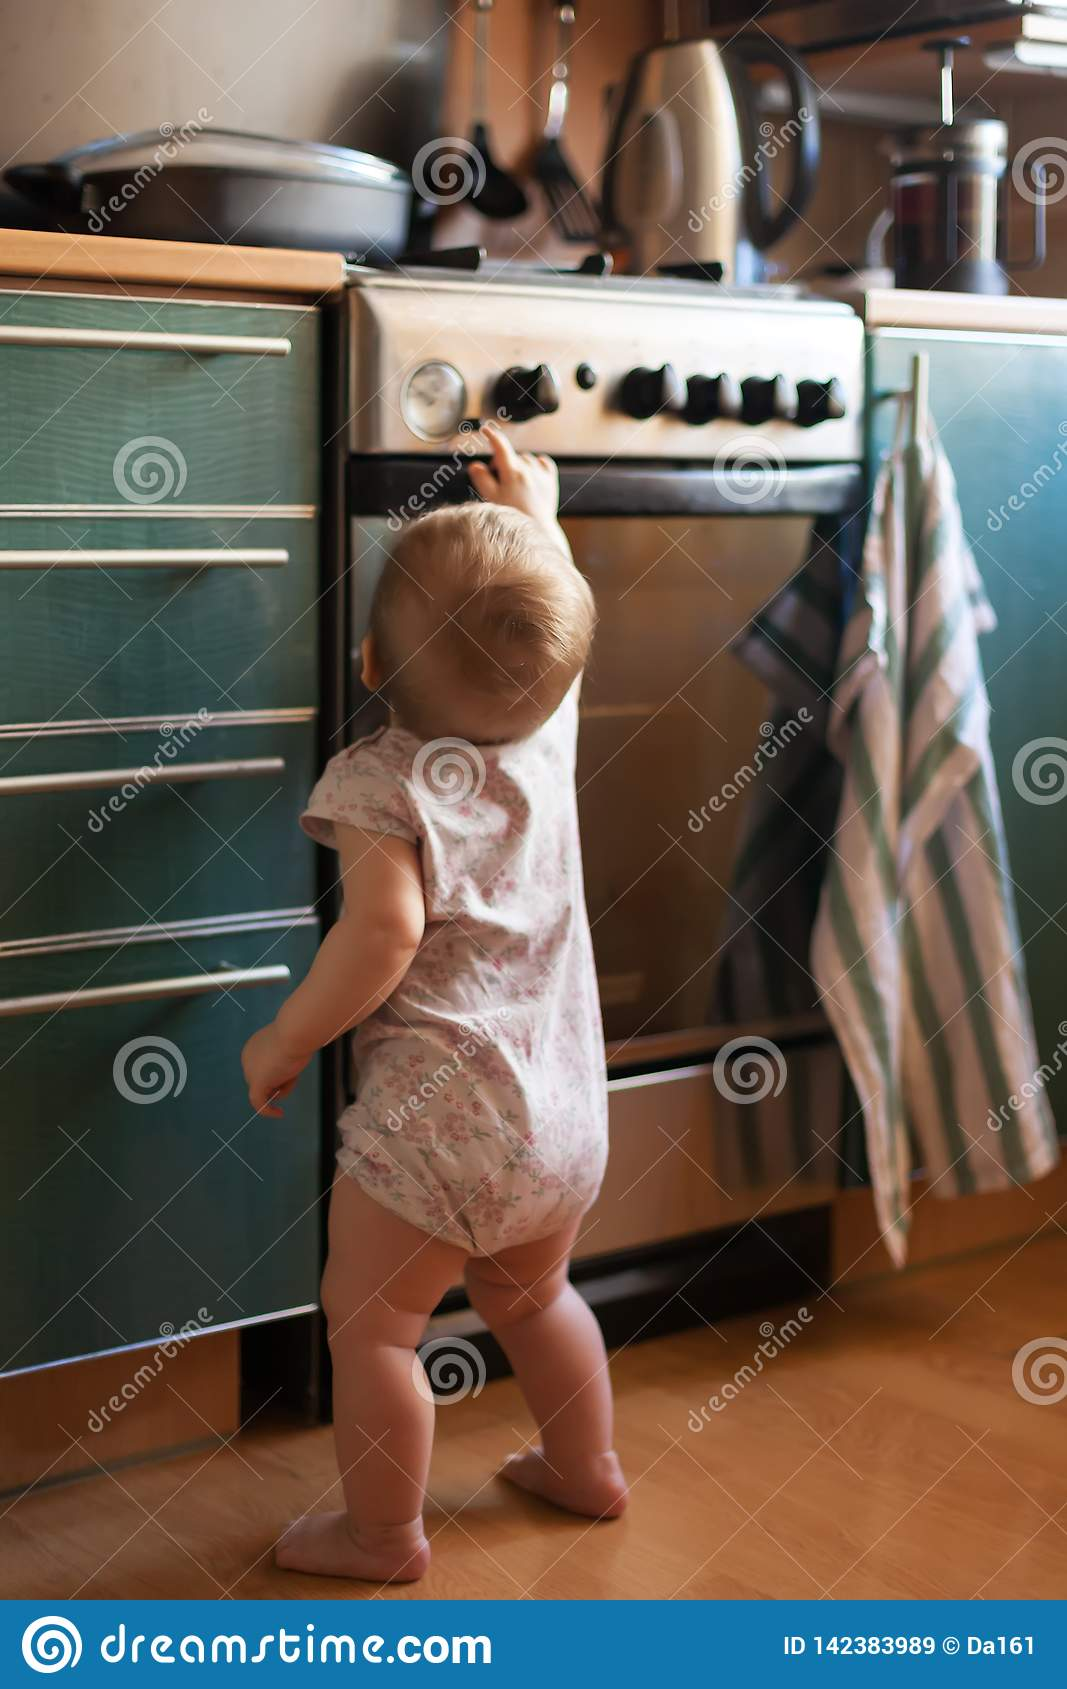 Child Safety In Kitchen Near Stove Stock Image - Image of